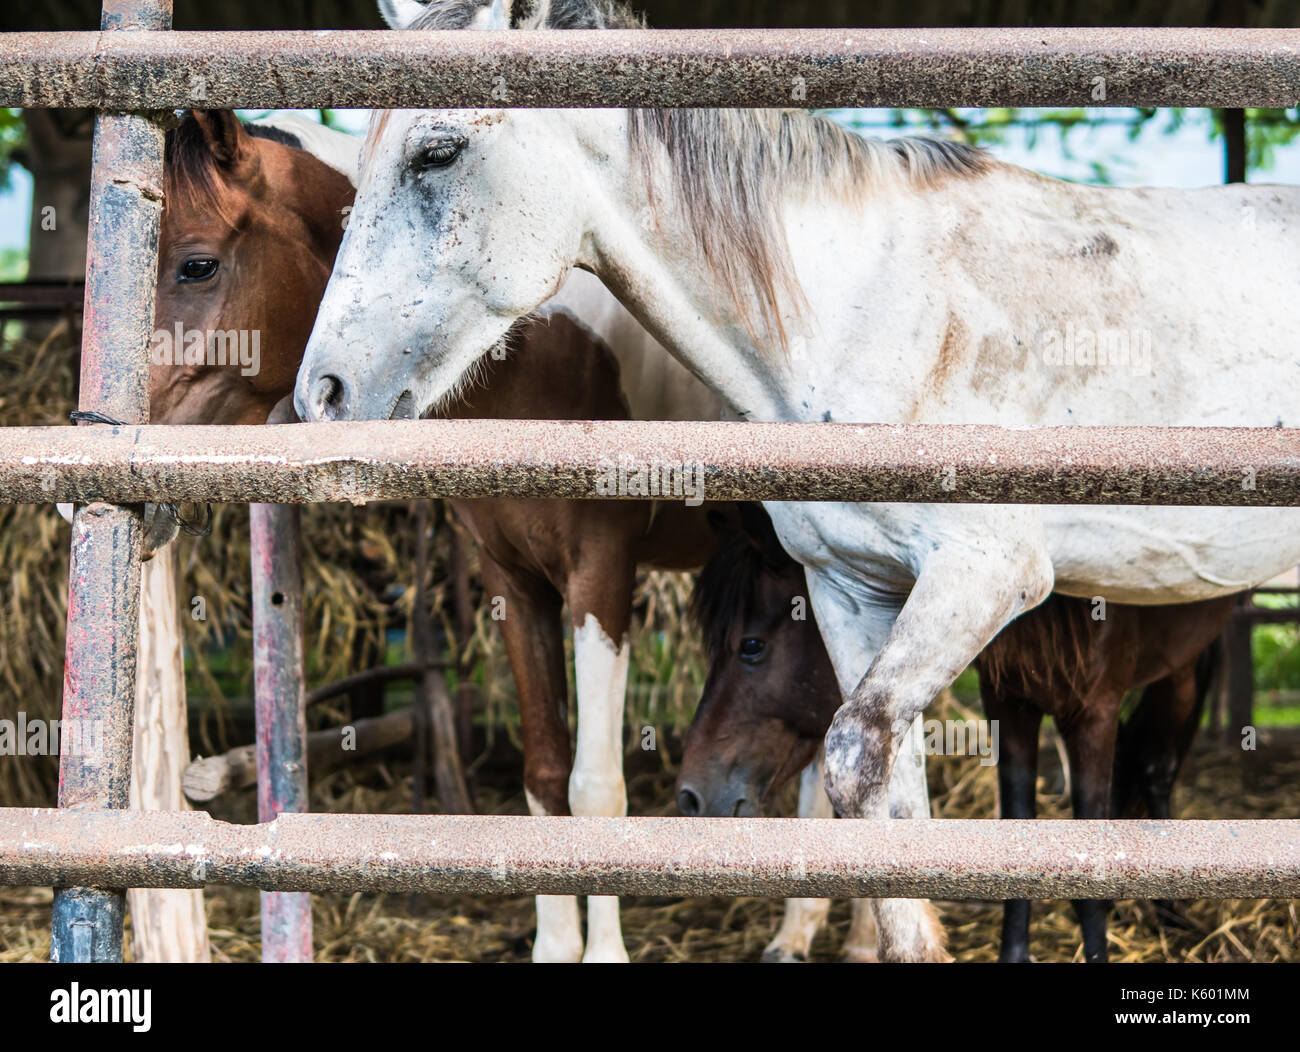 Horses boarded behind worn concrete fence in Cuba - Stock Image